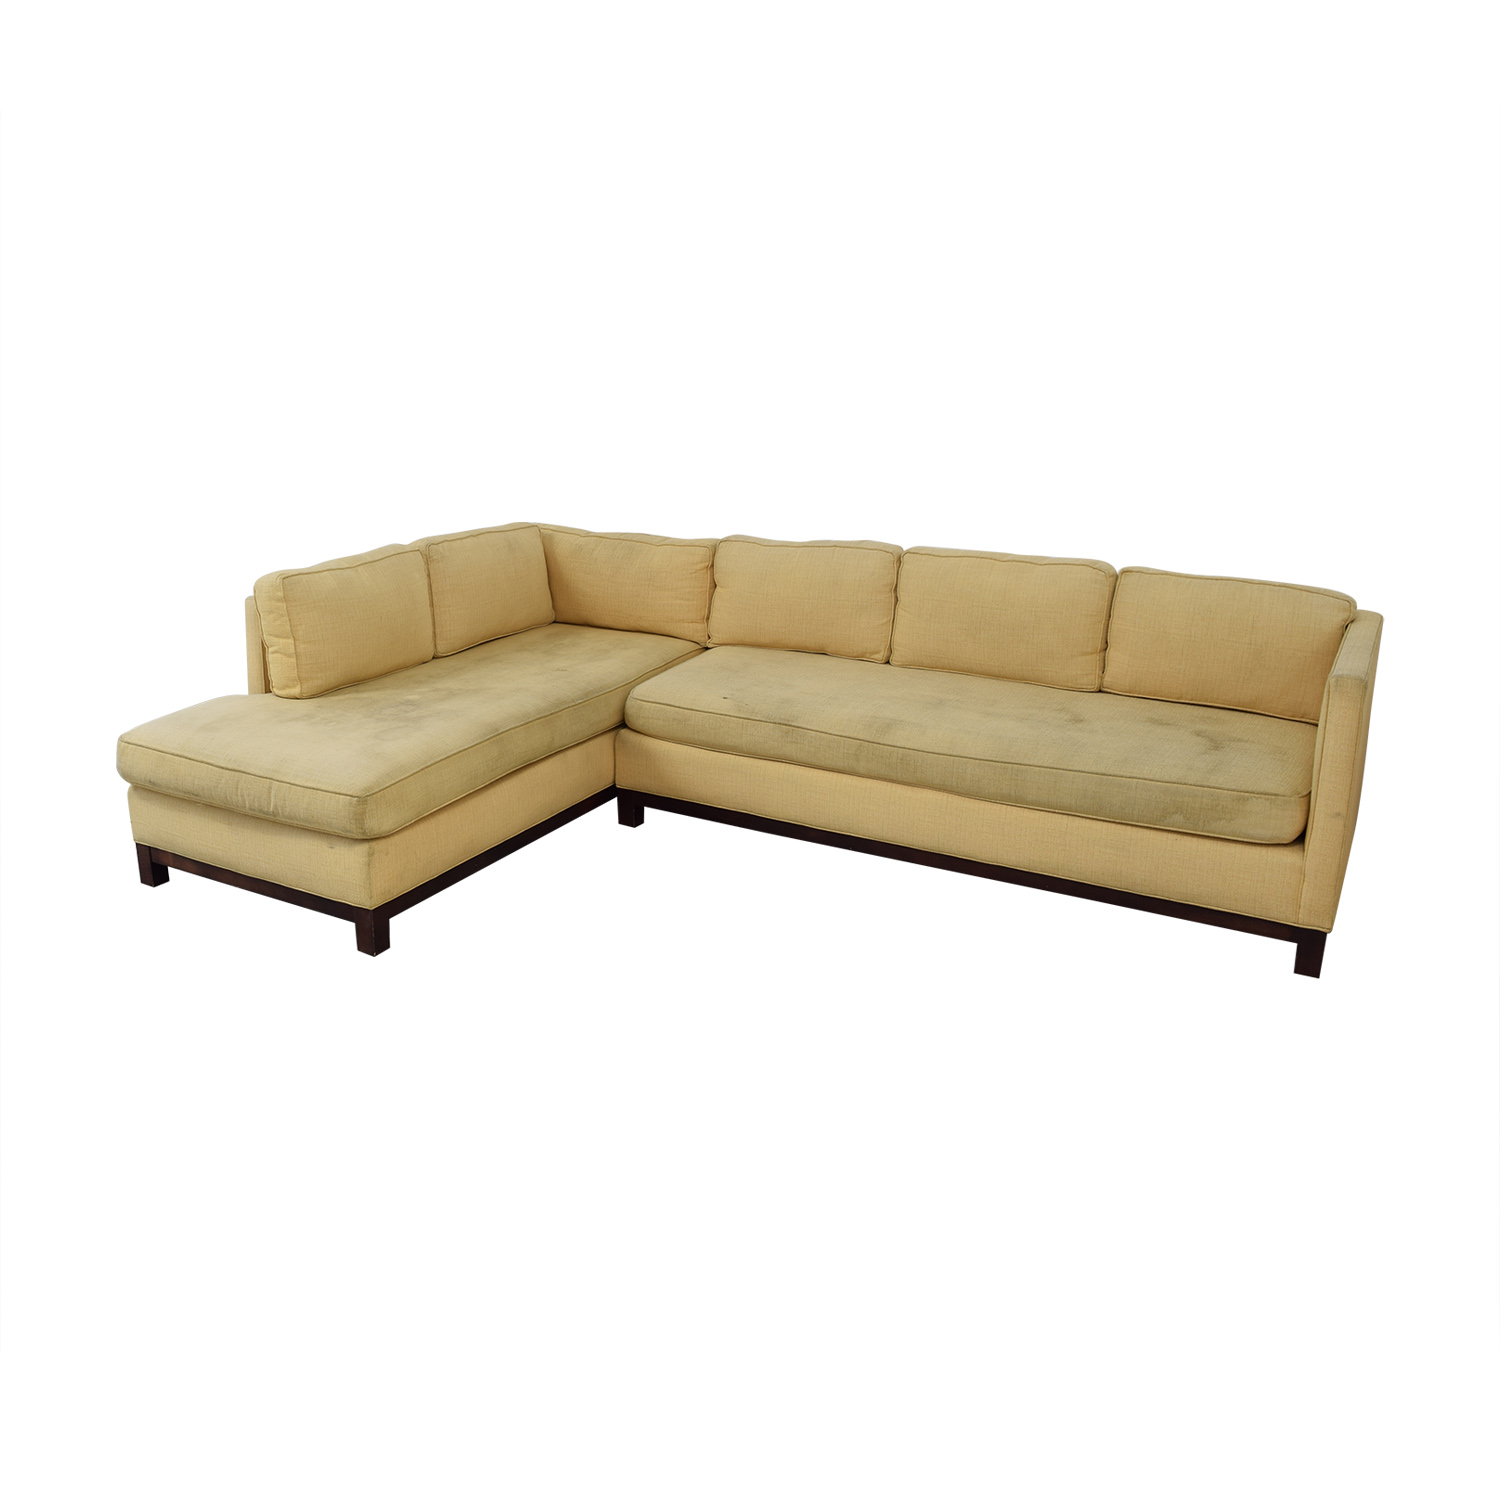 Mitchell Gold + Bob Williams Mitchell Gold + Bob Williams Clifton Chaise Sectional Sofa used